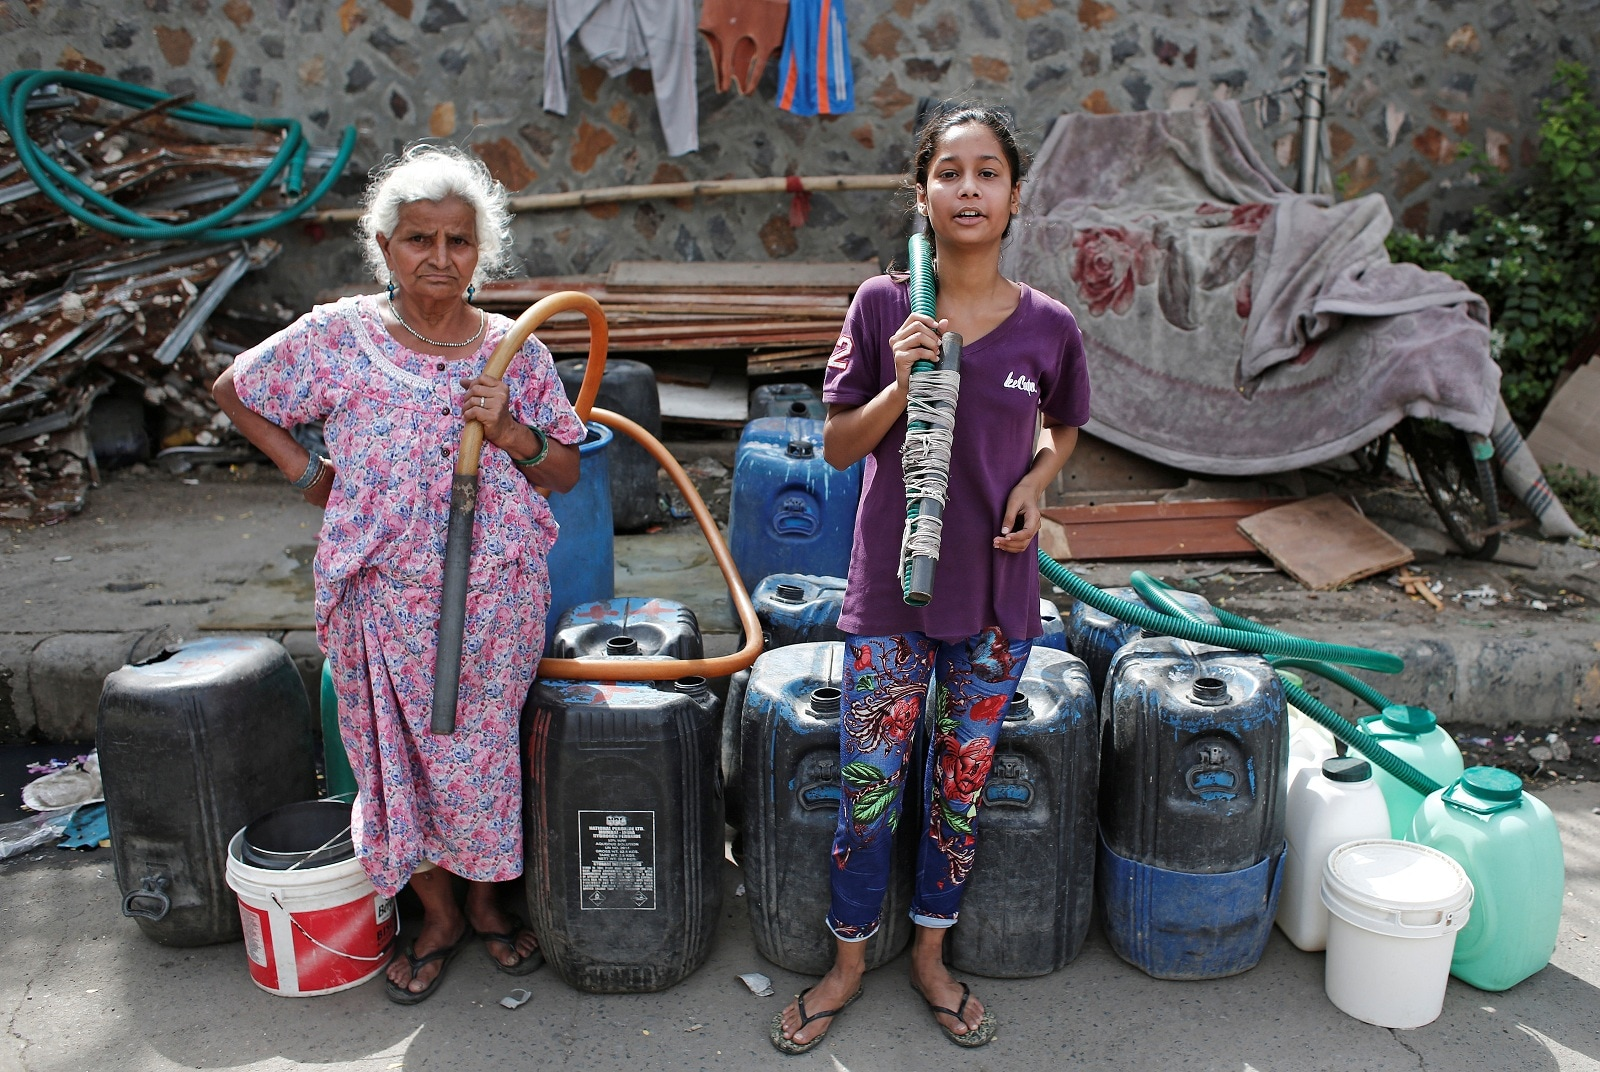 Residents holds pipes as they wait for a municipal water tanker in New Delhi, June 28, 2019. REUTERS/Adnan Abidi/Files